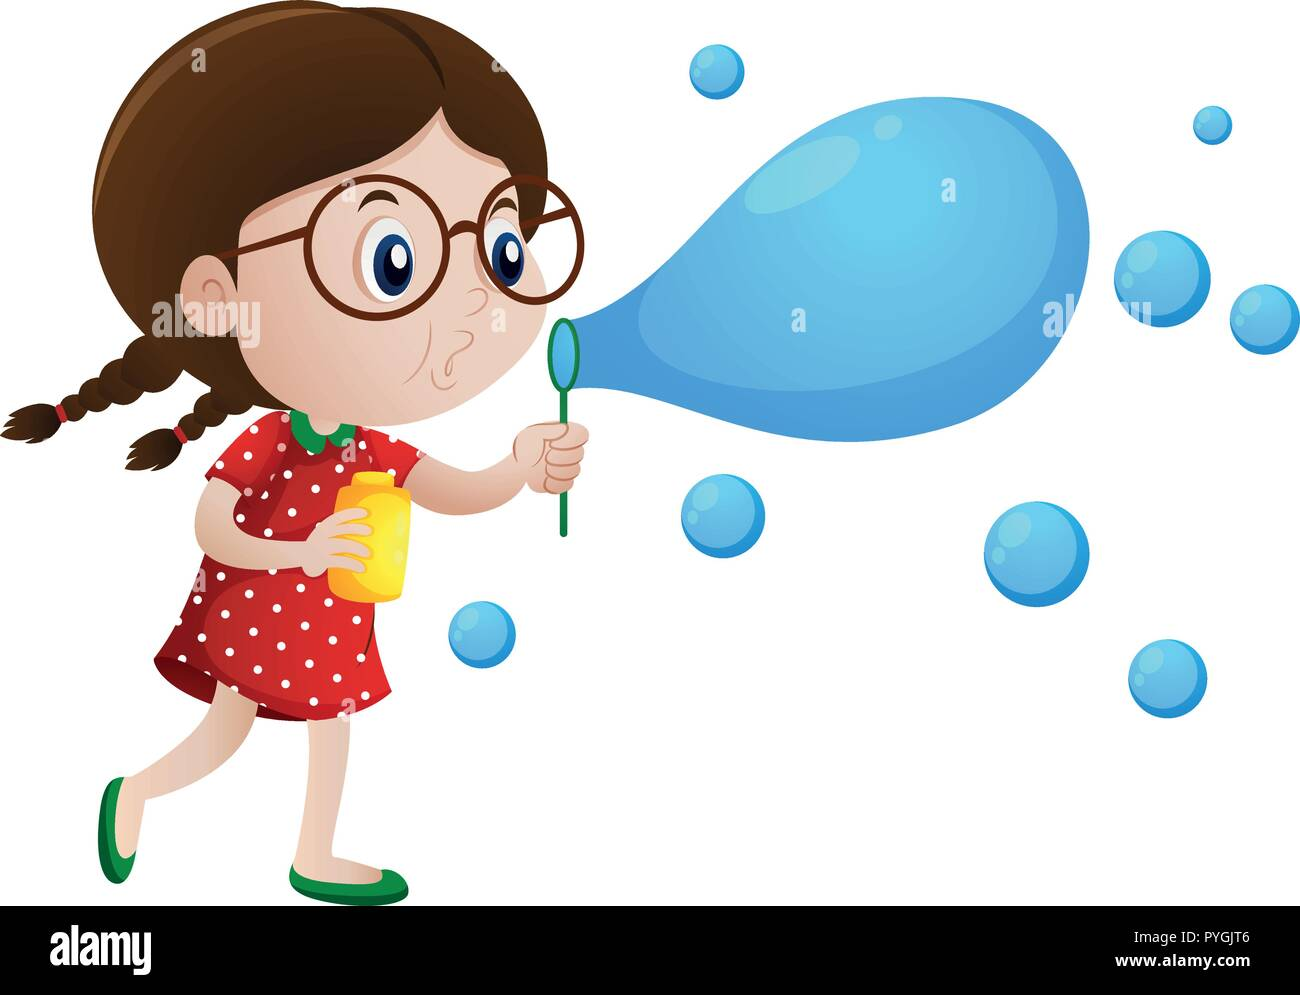 Little girl blowing bubbles illustration - Stock Vector